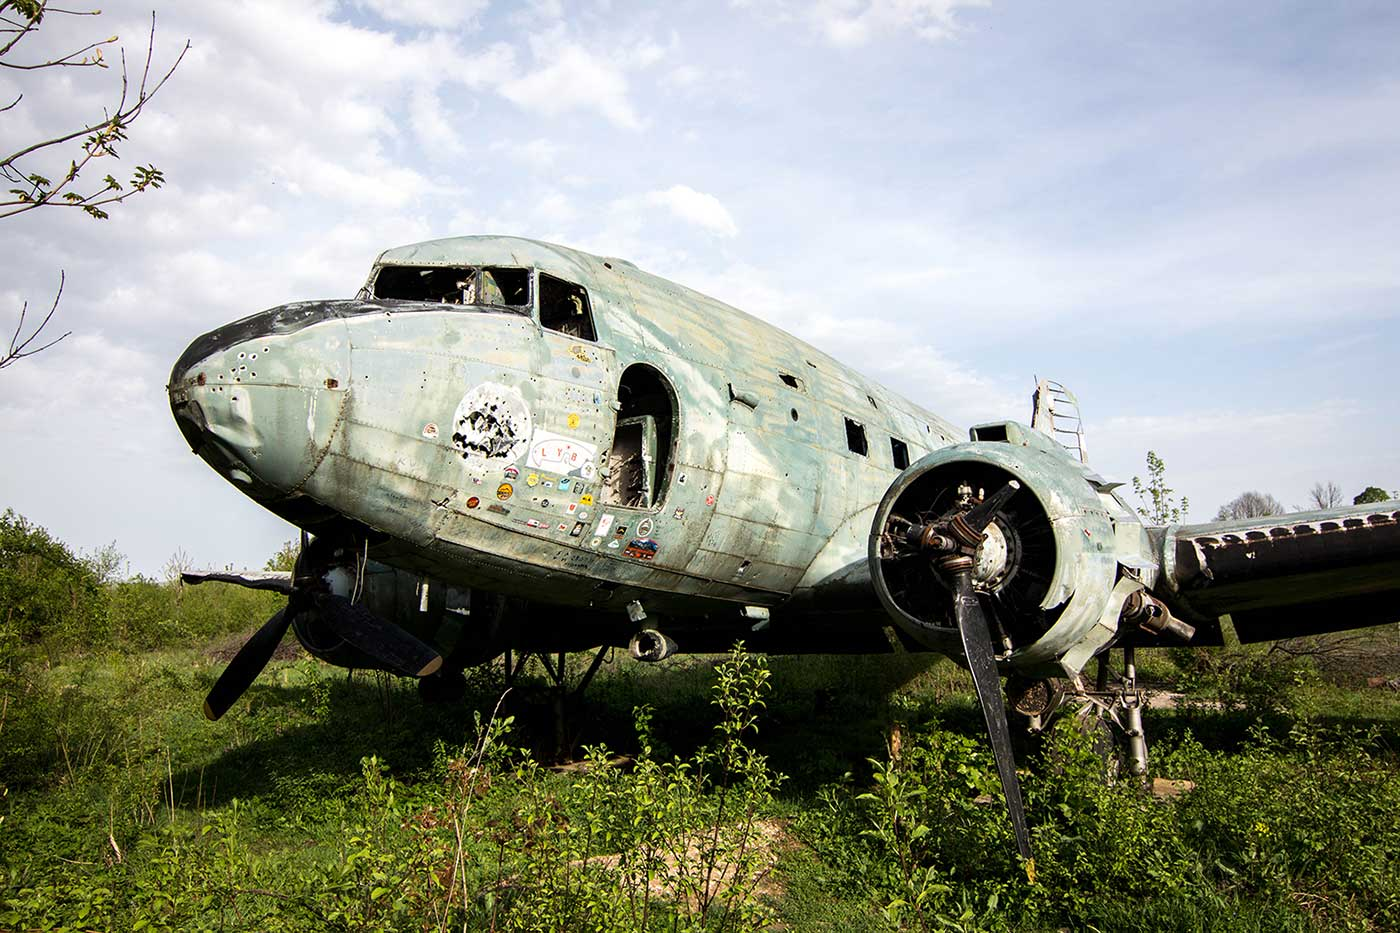 An abandoned Douglas C-47 near the former barracks. Yugoslavia's non-aligned status allowed its military to make use of both American- and Soviet-built aircraft. As late as 2012 there were reportedly also two American Republic F-84 Thunderjets left abandoned in the vicinity, though those have since disappeared. Zeljava, Yugoslavia.